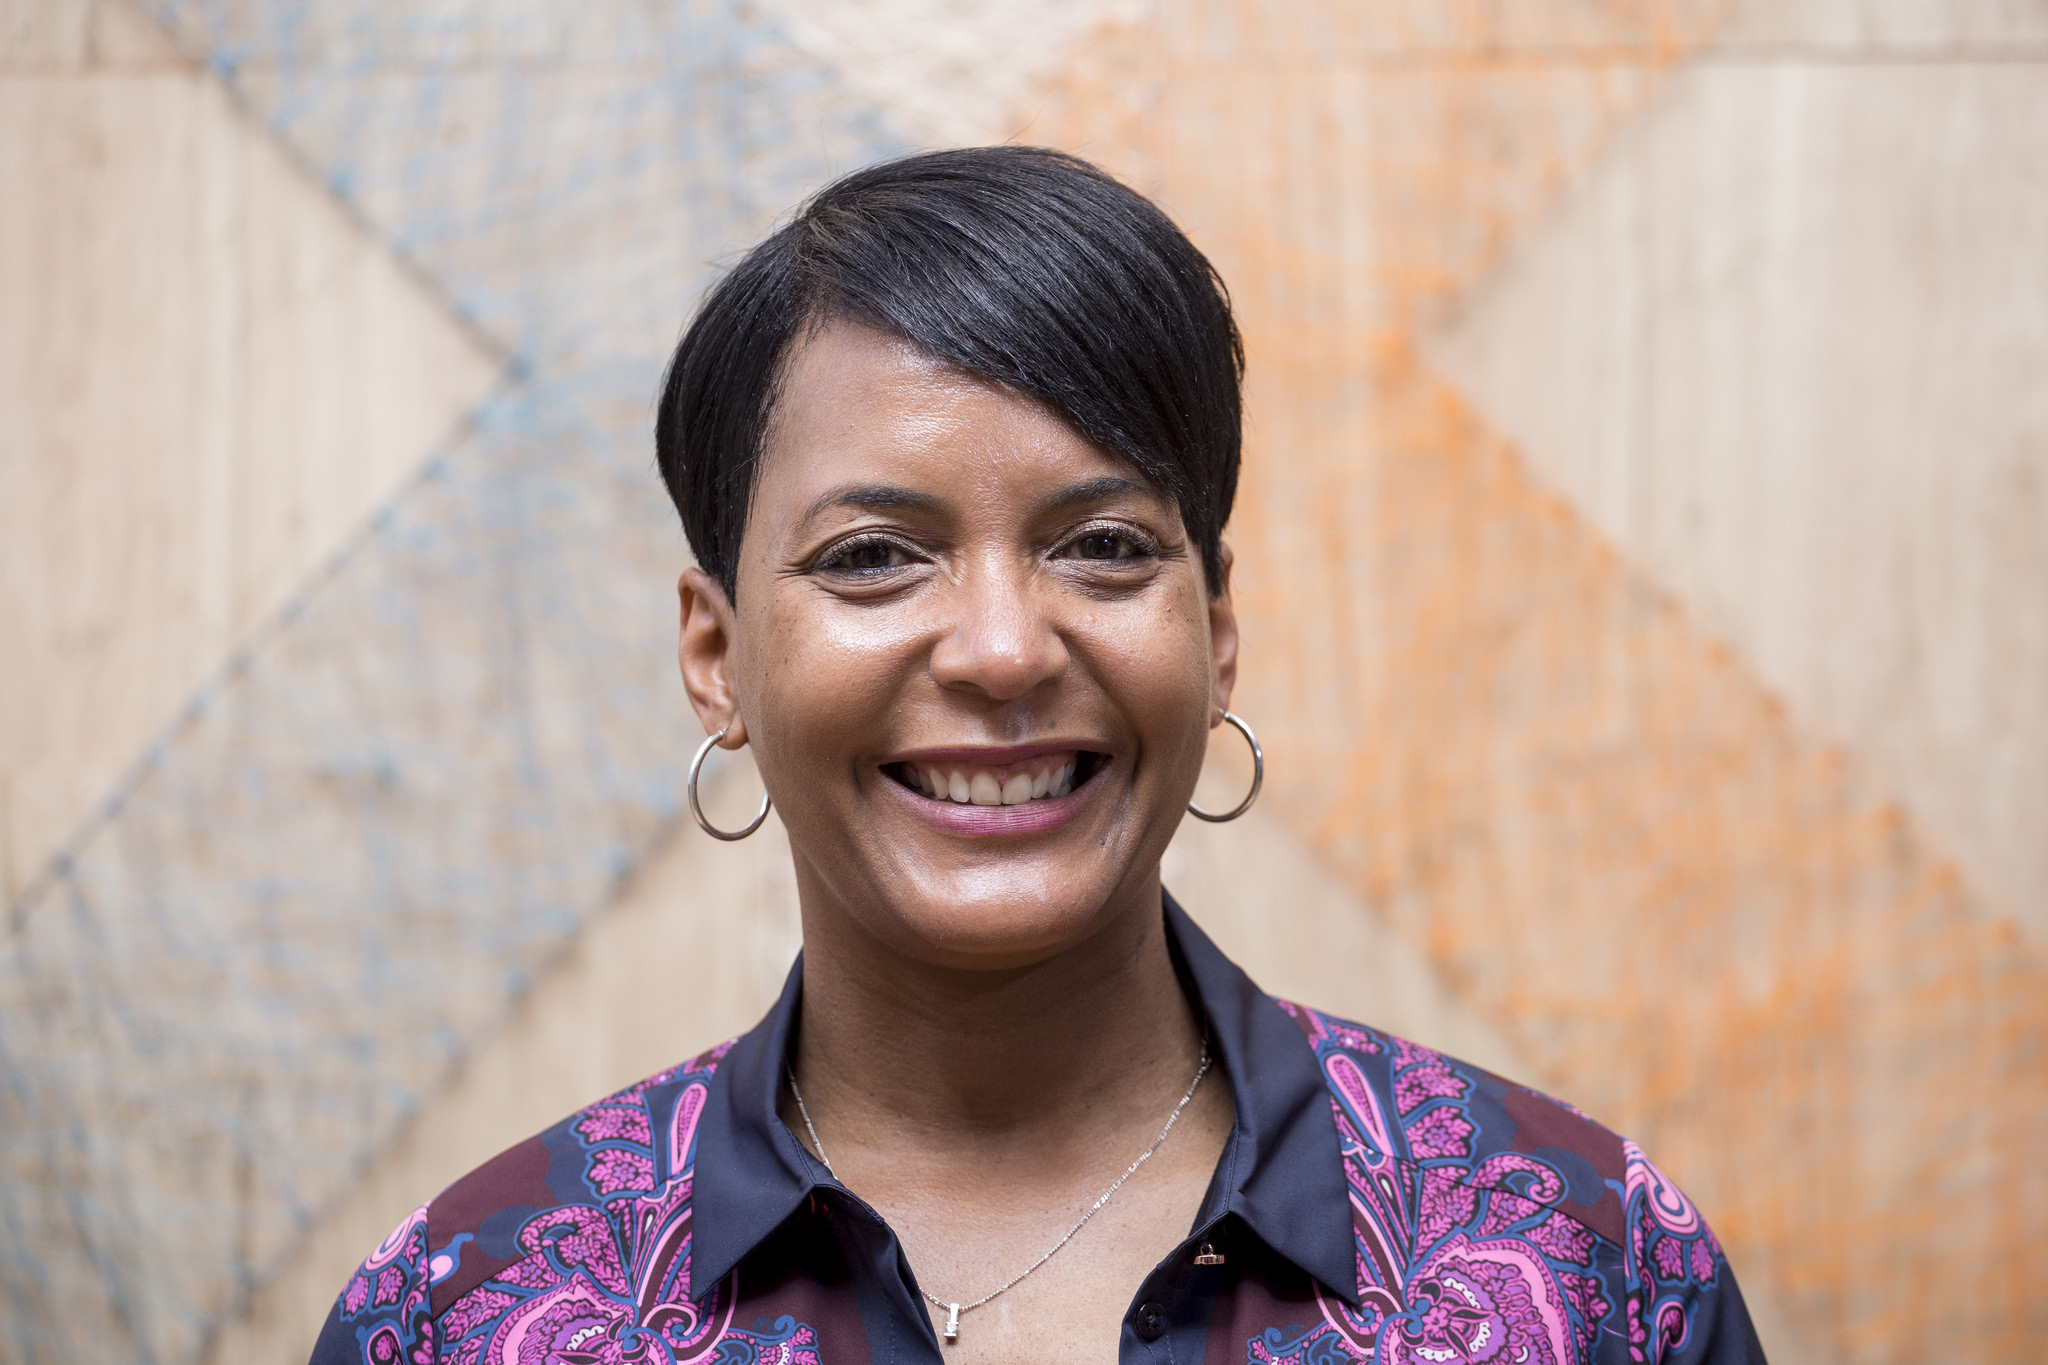 - On May 9, 2017,Keisha Lance Bottoms joined us for a 2017 #VoteLocalbreakfast at the Center for Civic Innovation. Keisha seeks to leverage her past work as a judge and city council person to enhance our communities in Atlanta.CURRENT POSITION:City of Atlanta Council Member